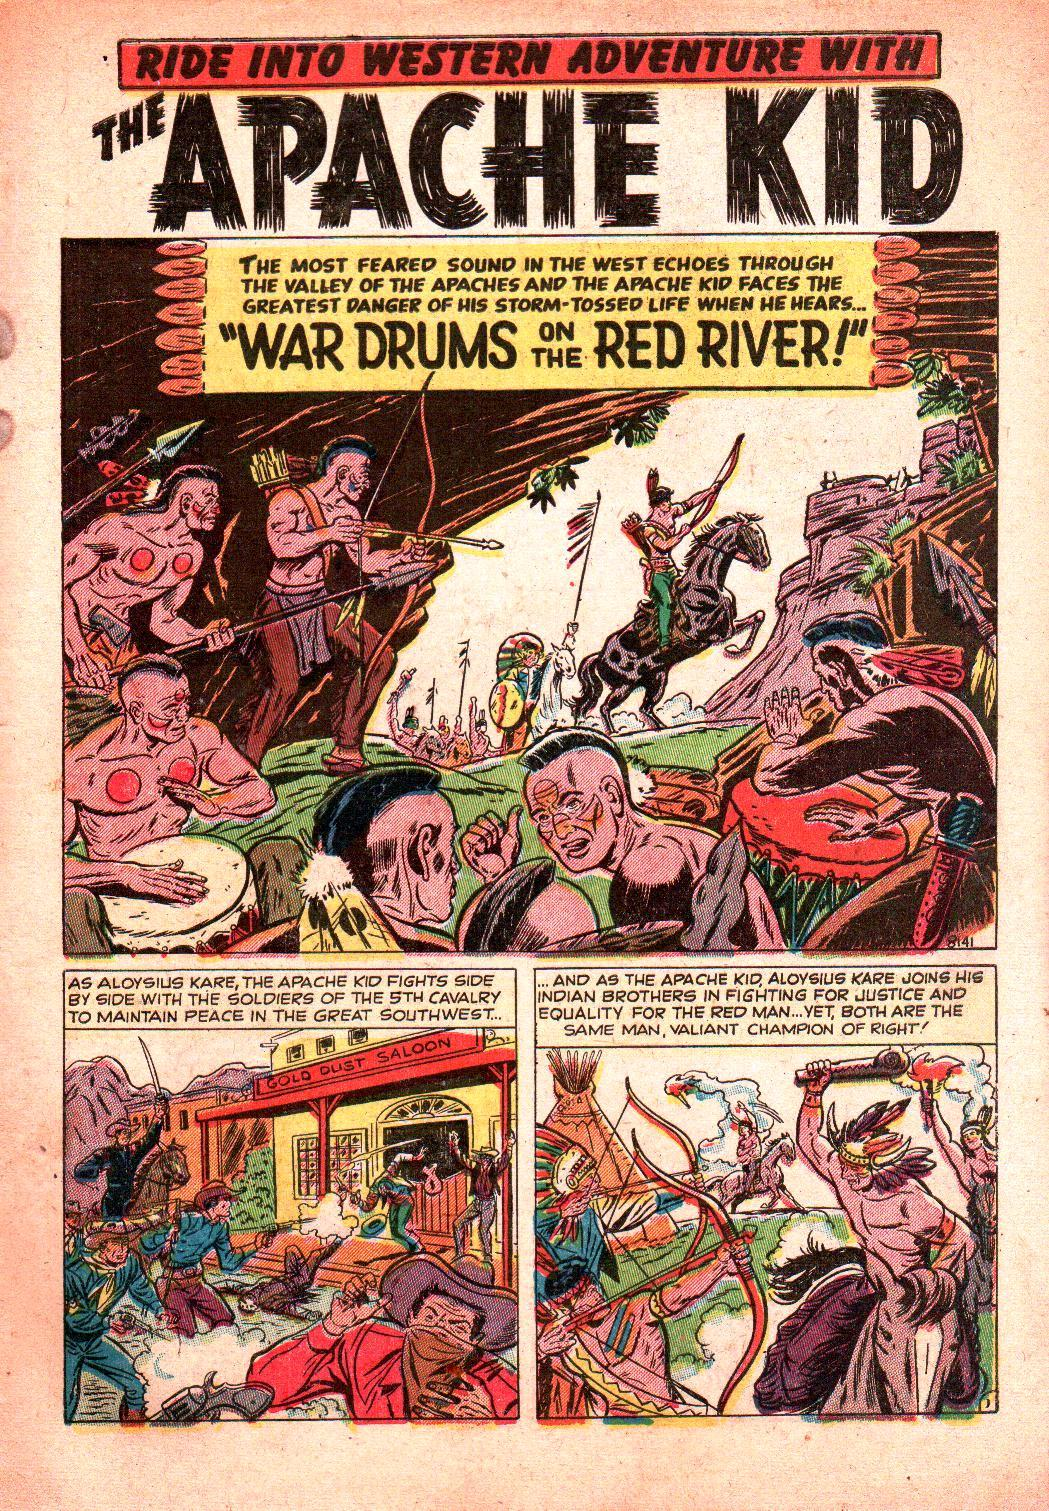 8141 War Drums on the Red River! Page 1